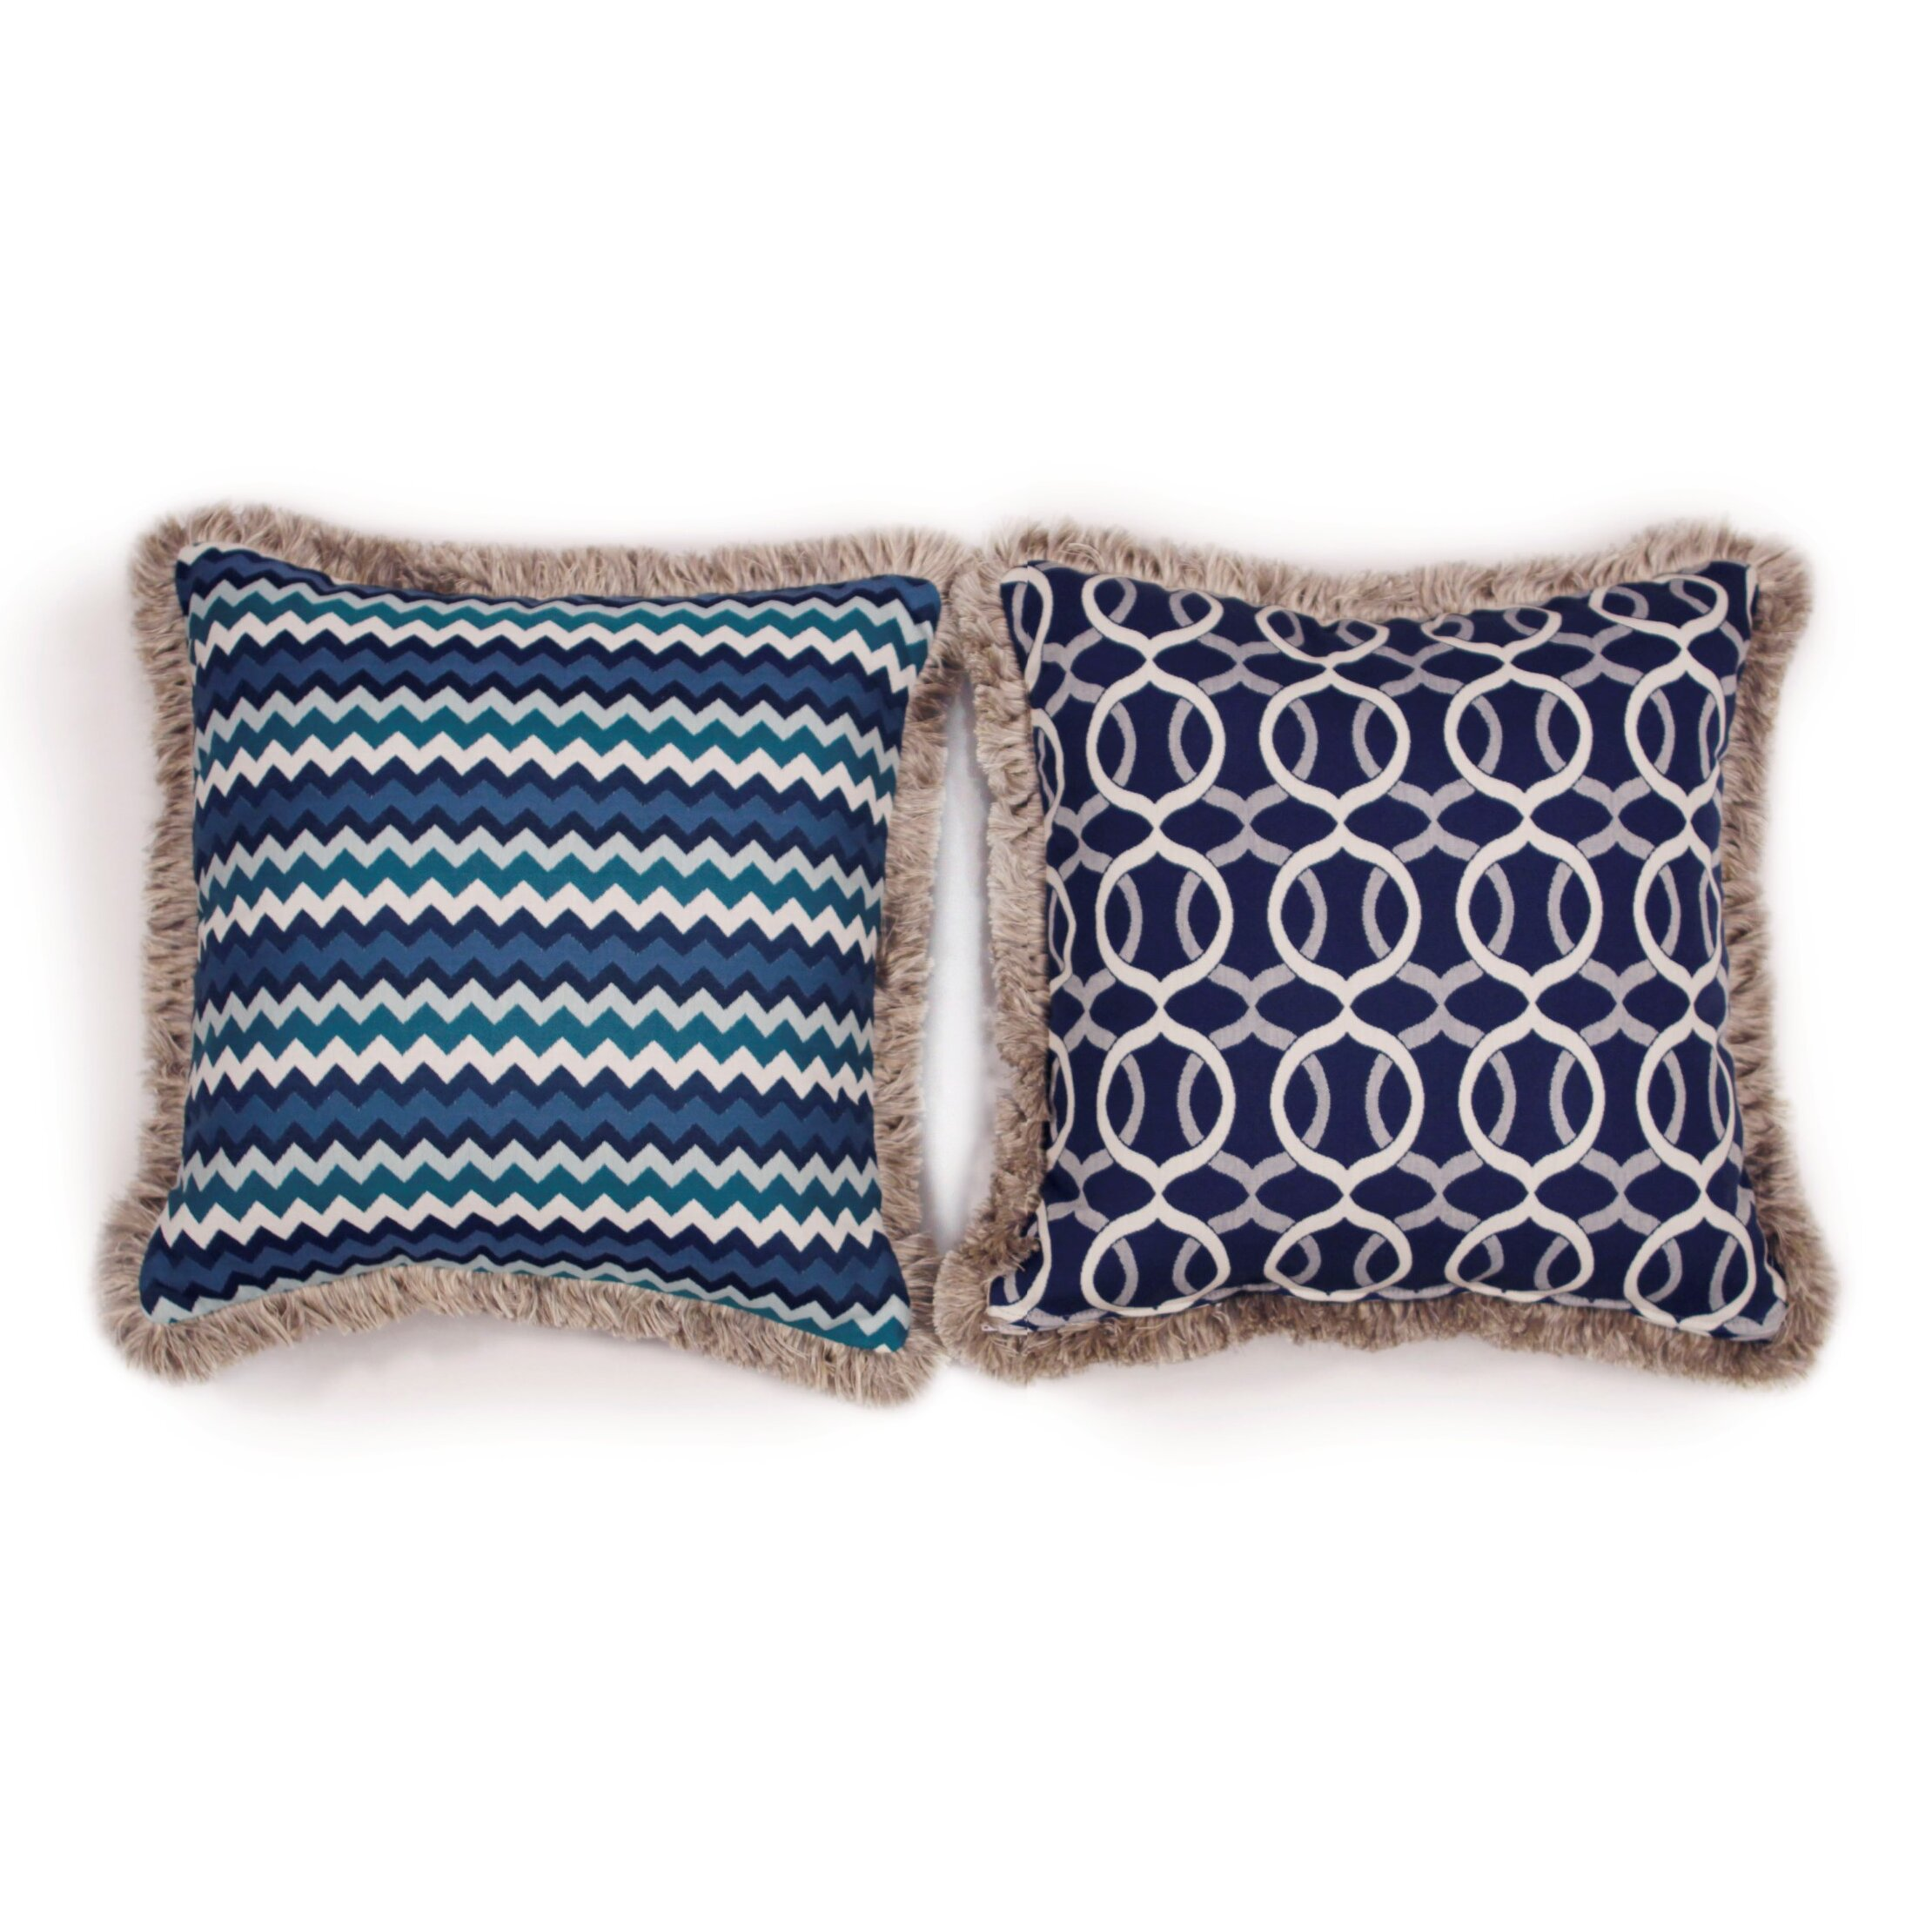 Large Decorative Outdoor Pillows : South Sea Rattan Bondi Large Indoor/Outdoor Sunbrella Throw Pillow Wayfair